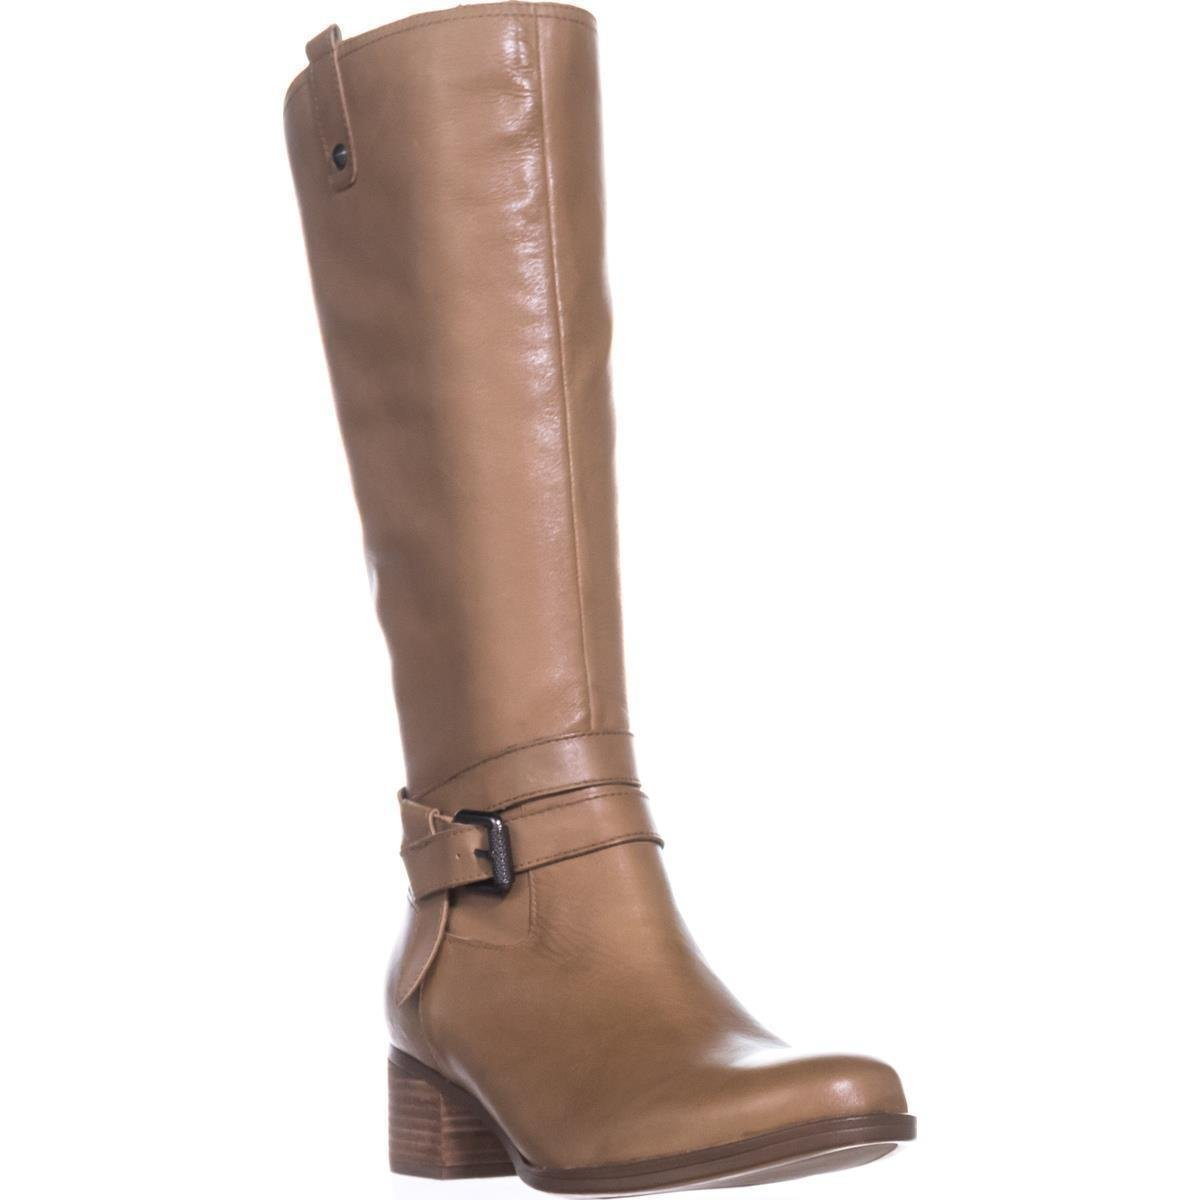 Naturalizer Women's Dev Riding Boot B073WZPZGM 9.5 C/D US|Oatmeal Leather